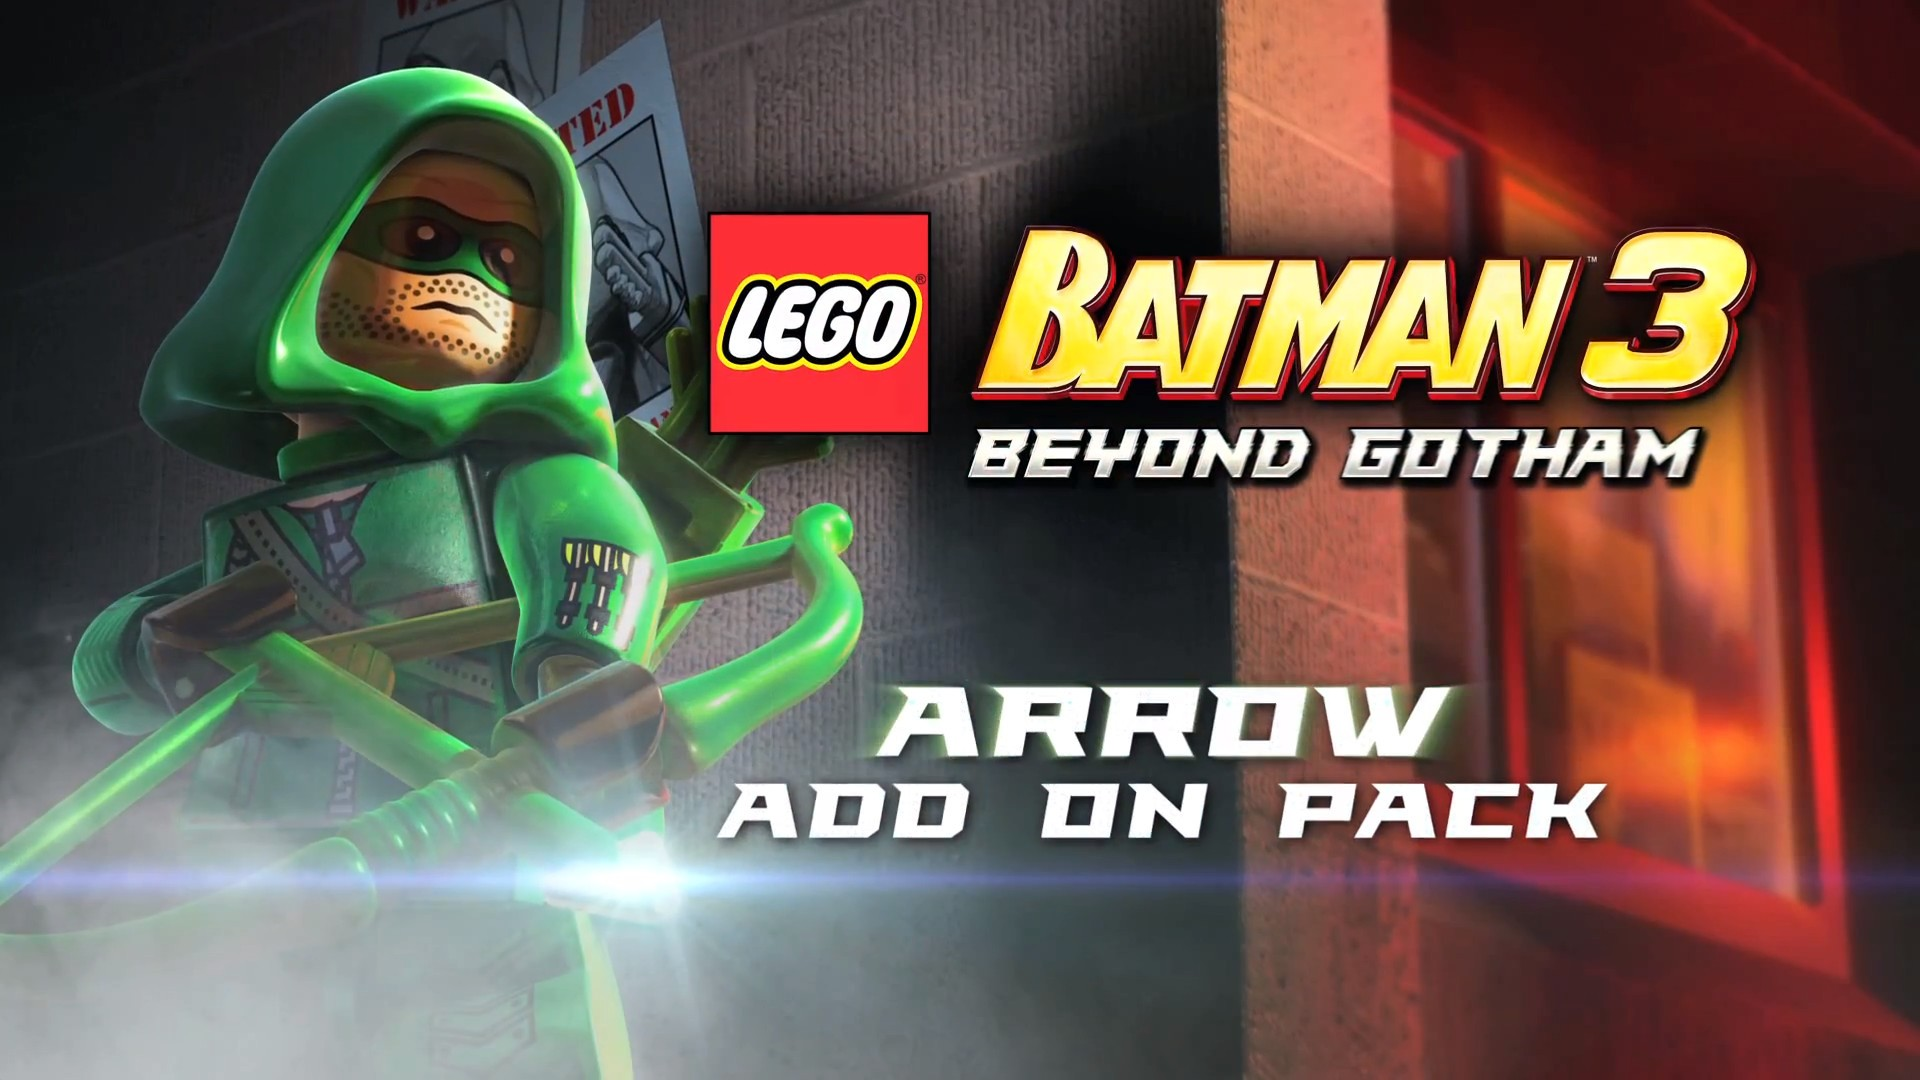 green arrow joins lego batman 3: beyond gotham starting january 14